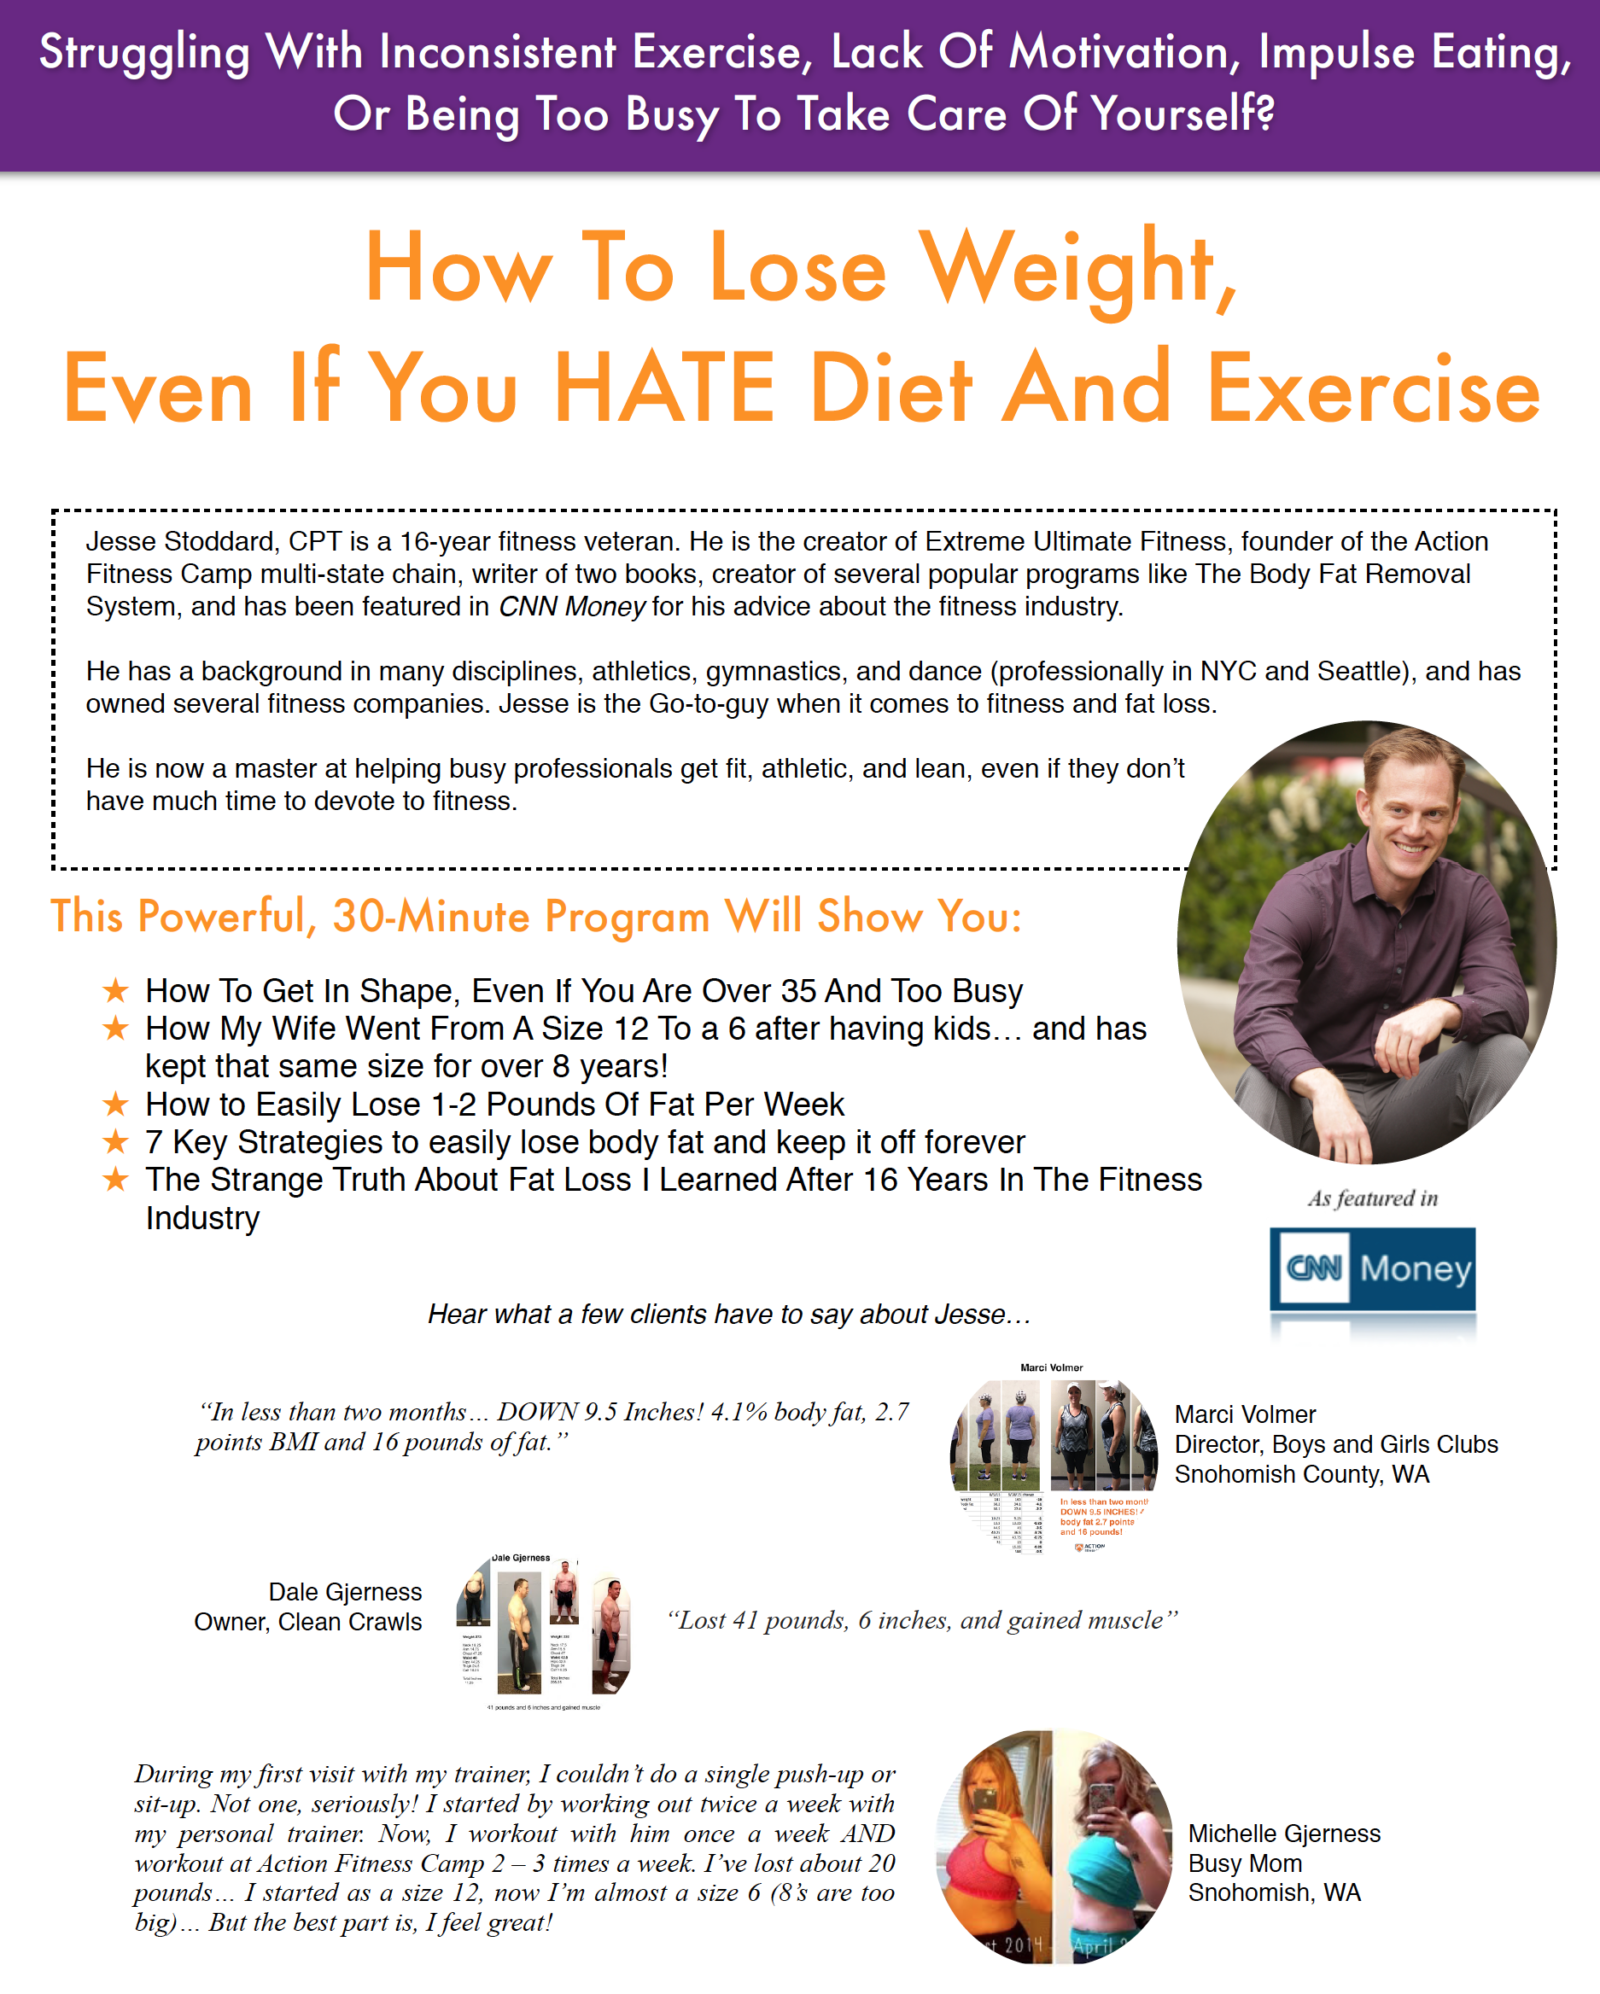 how-to-lose-weight-even-if-you-hate-diet-and-exercise